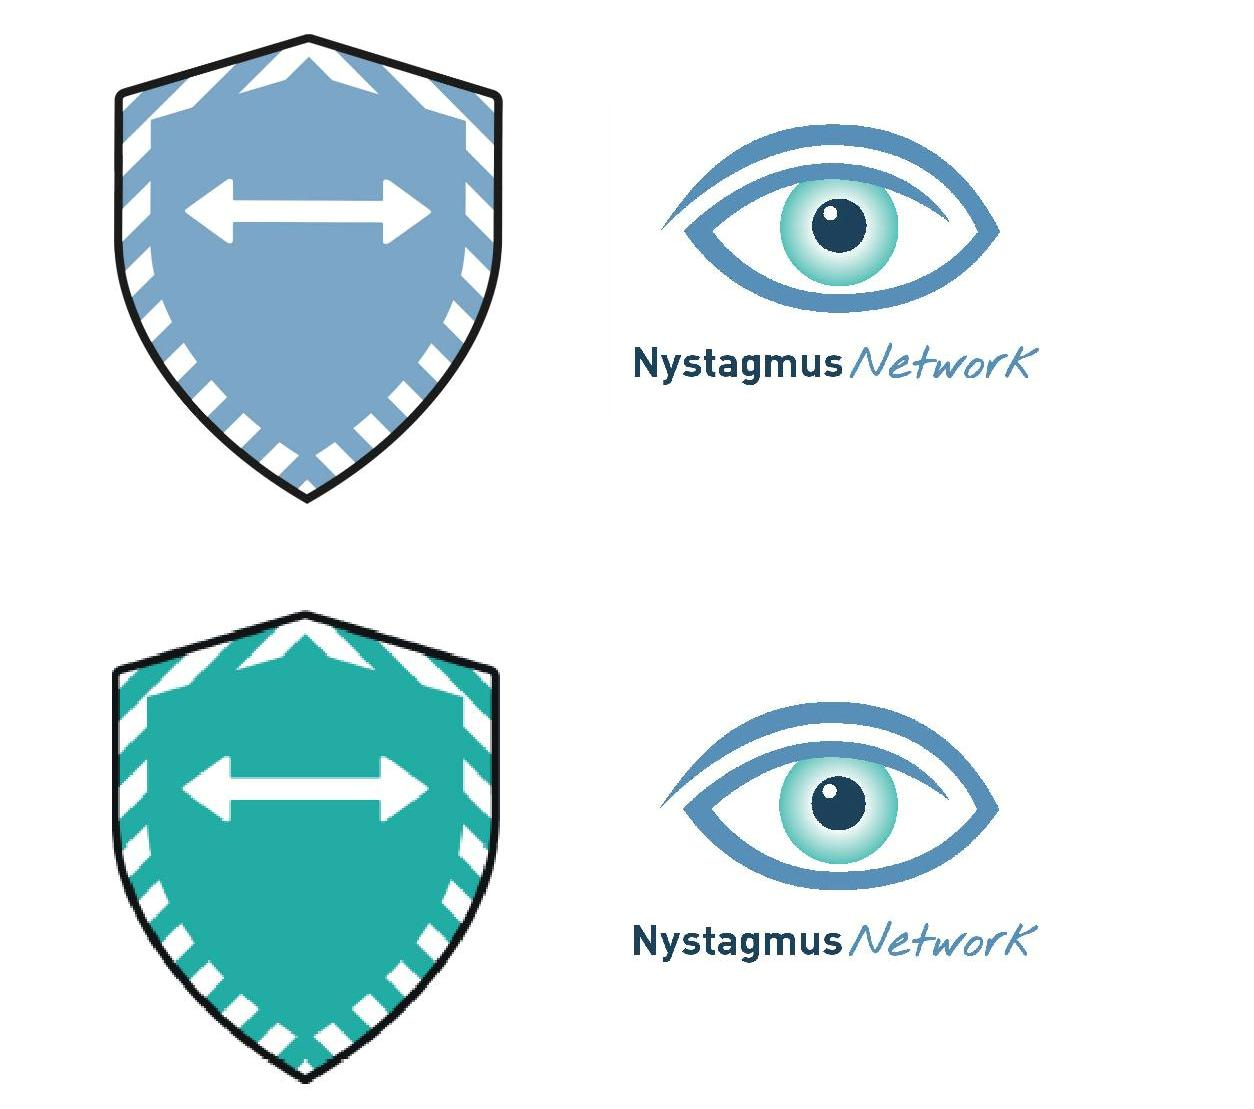 2 distance shields alongside 2 Nystagmus Network logos.